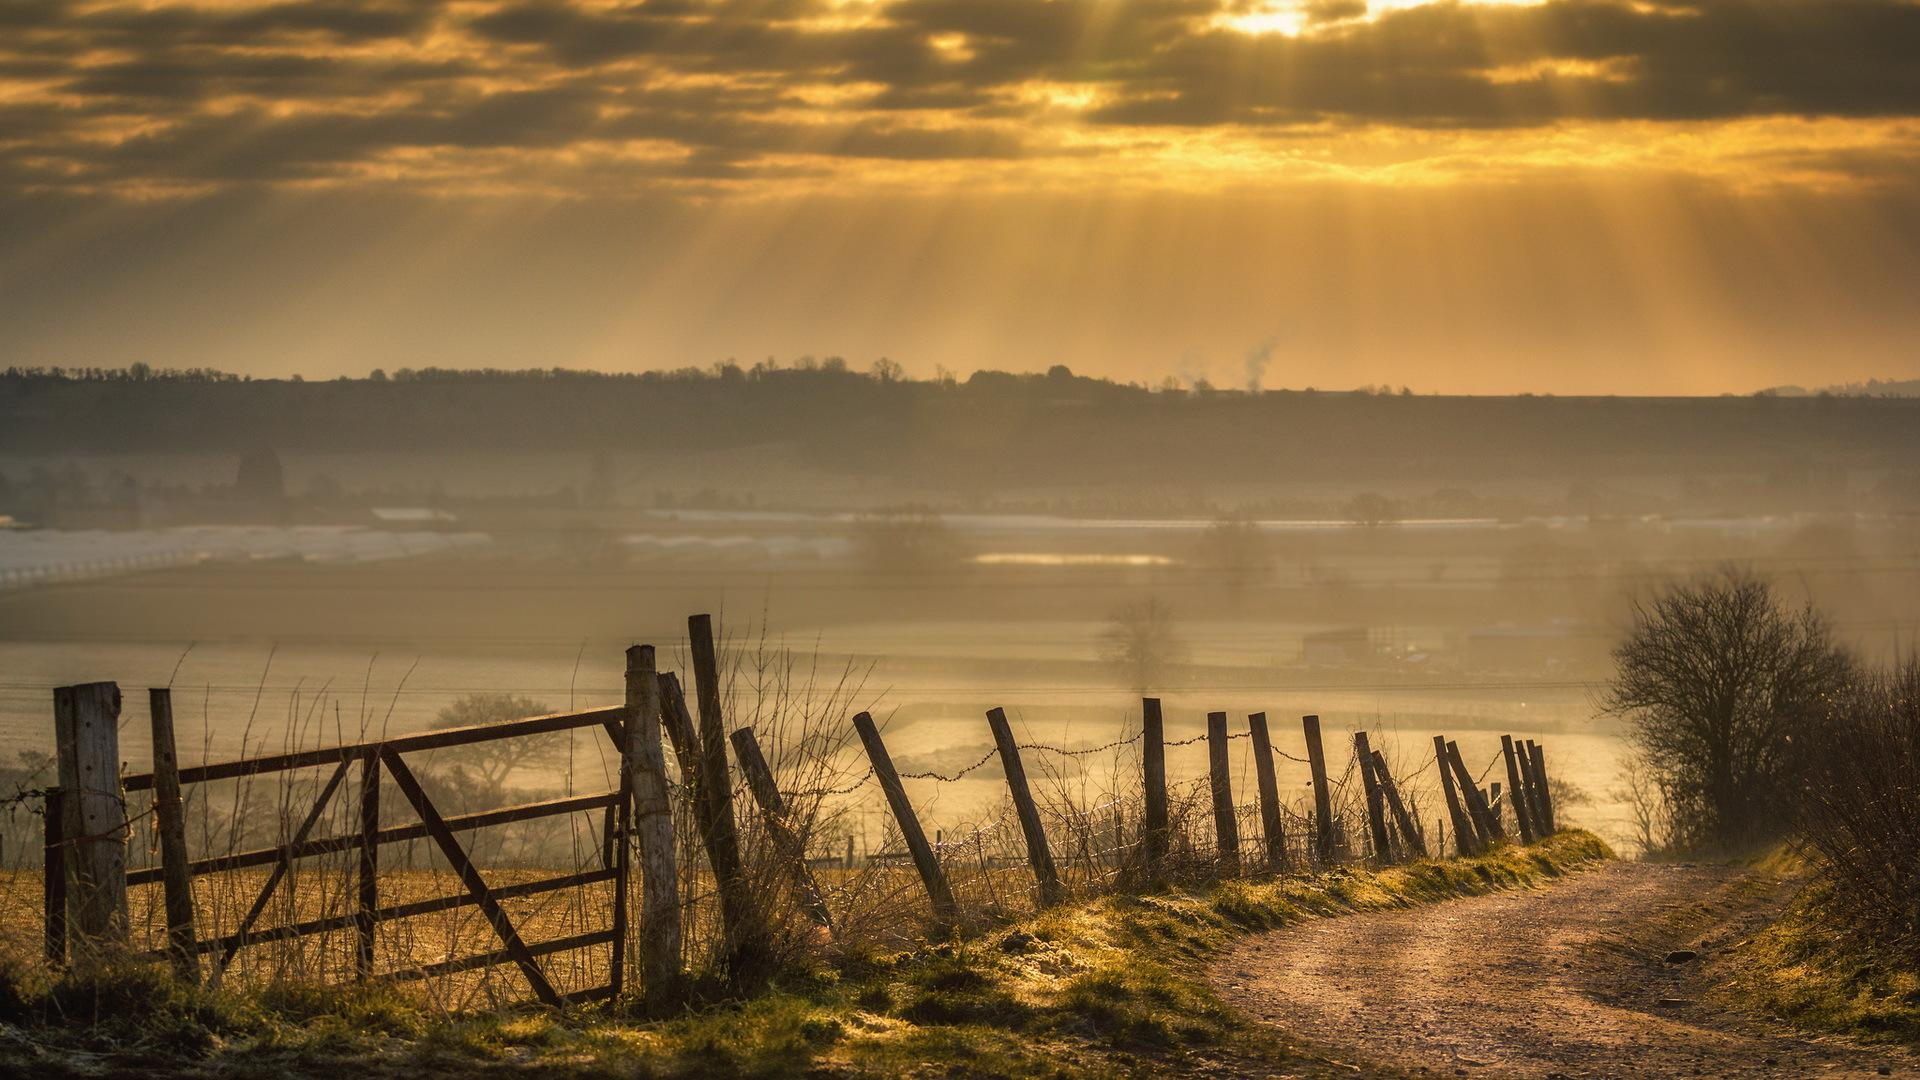 Nature Country Fence Road View IPhone Wallpaper Wallpapers 1920x1080